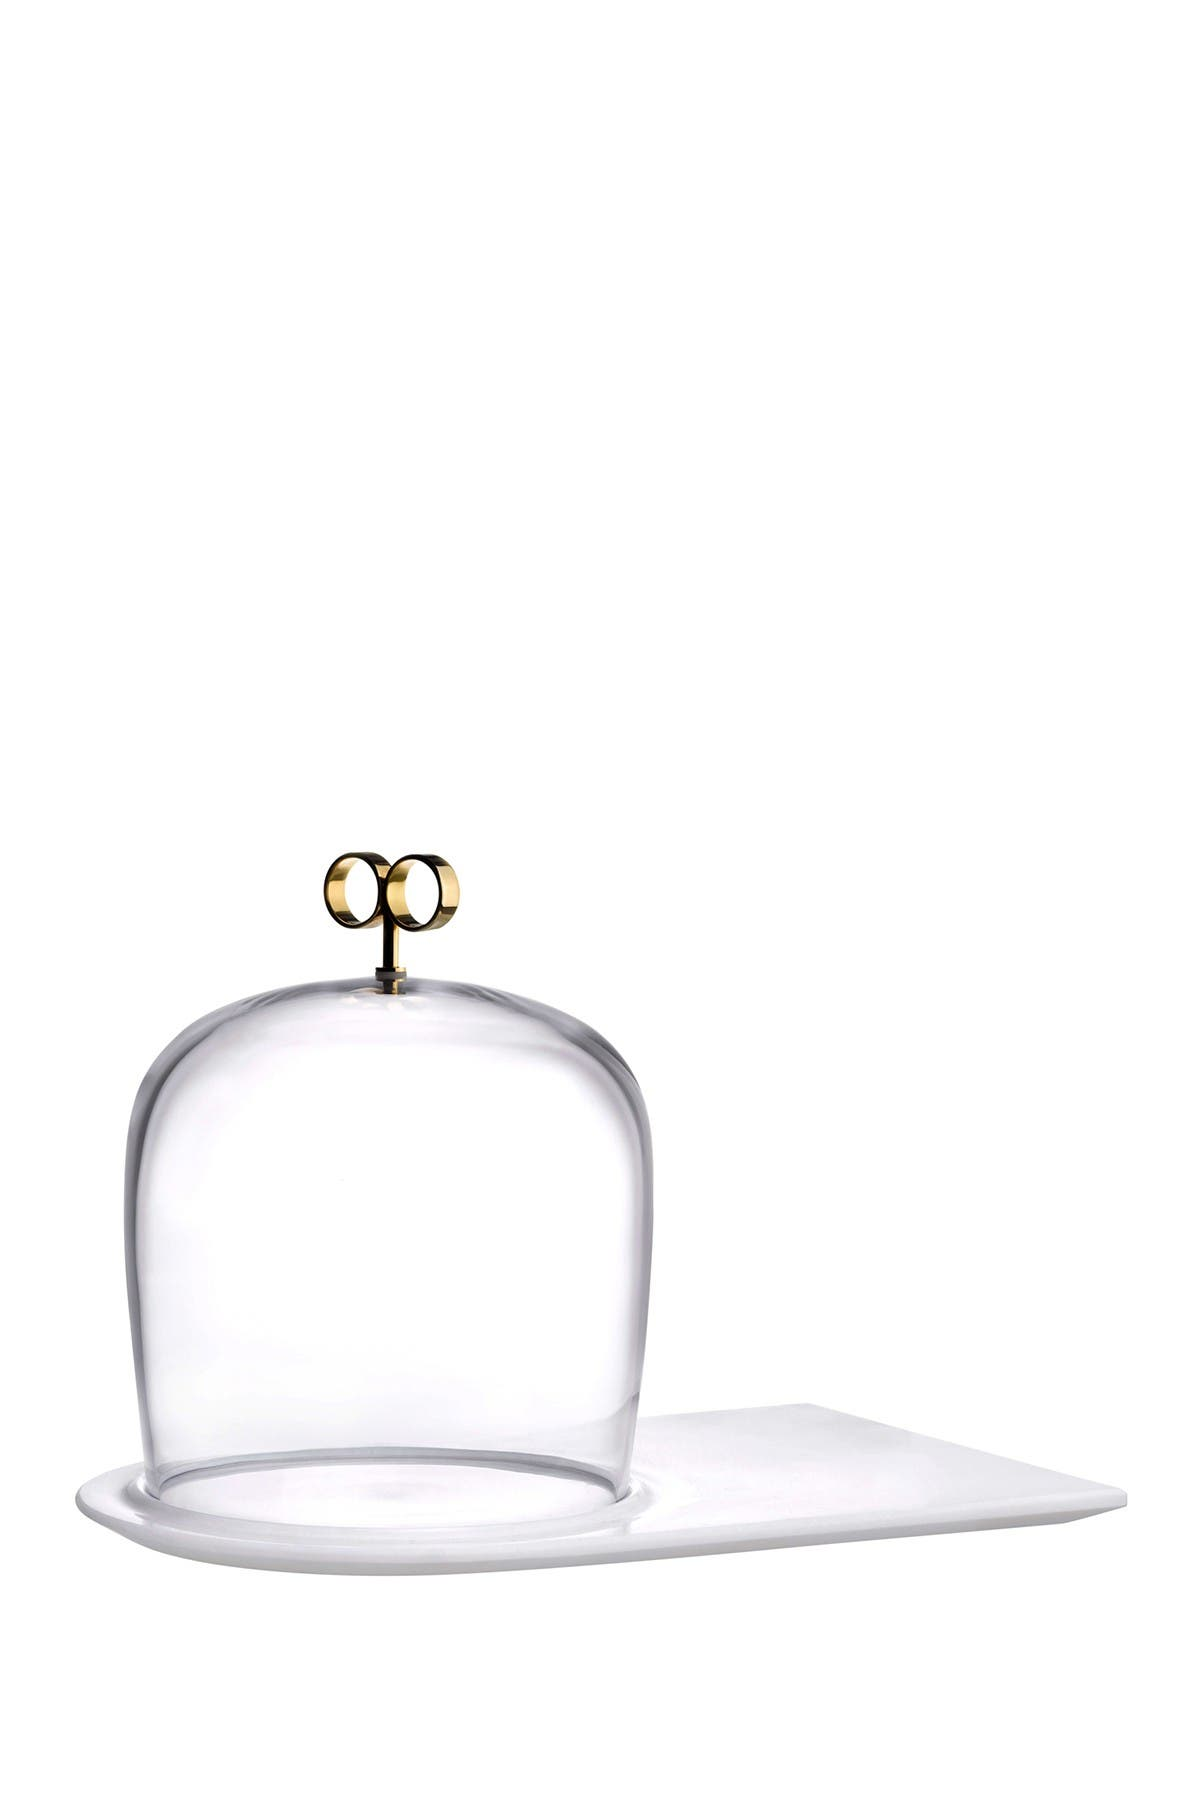 Image of Nude Glass Cupola Cake Dome - High with Brass Handle and Marble Base